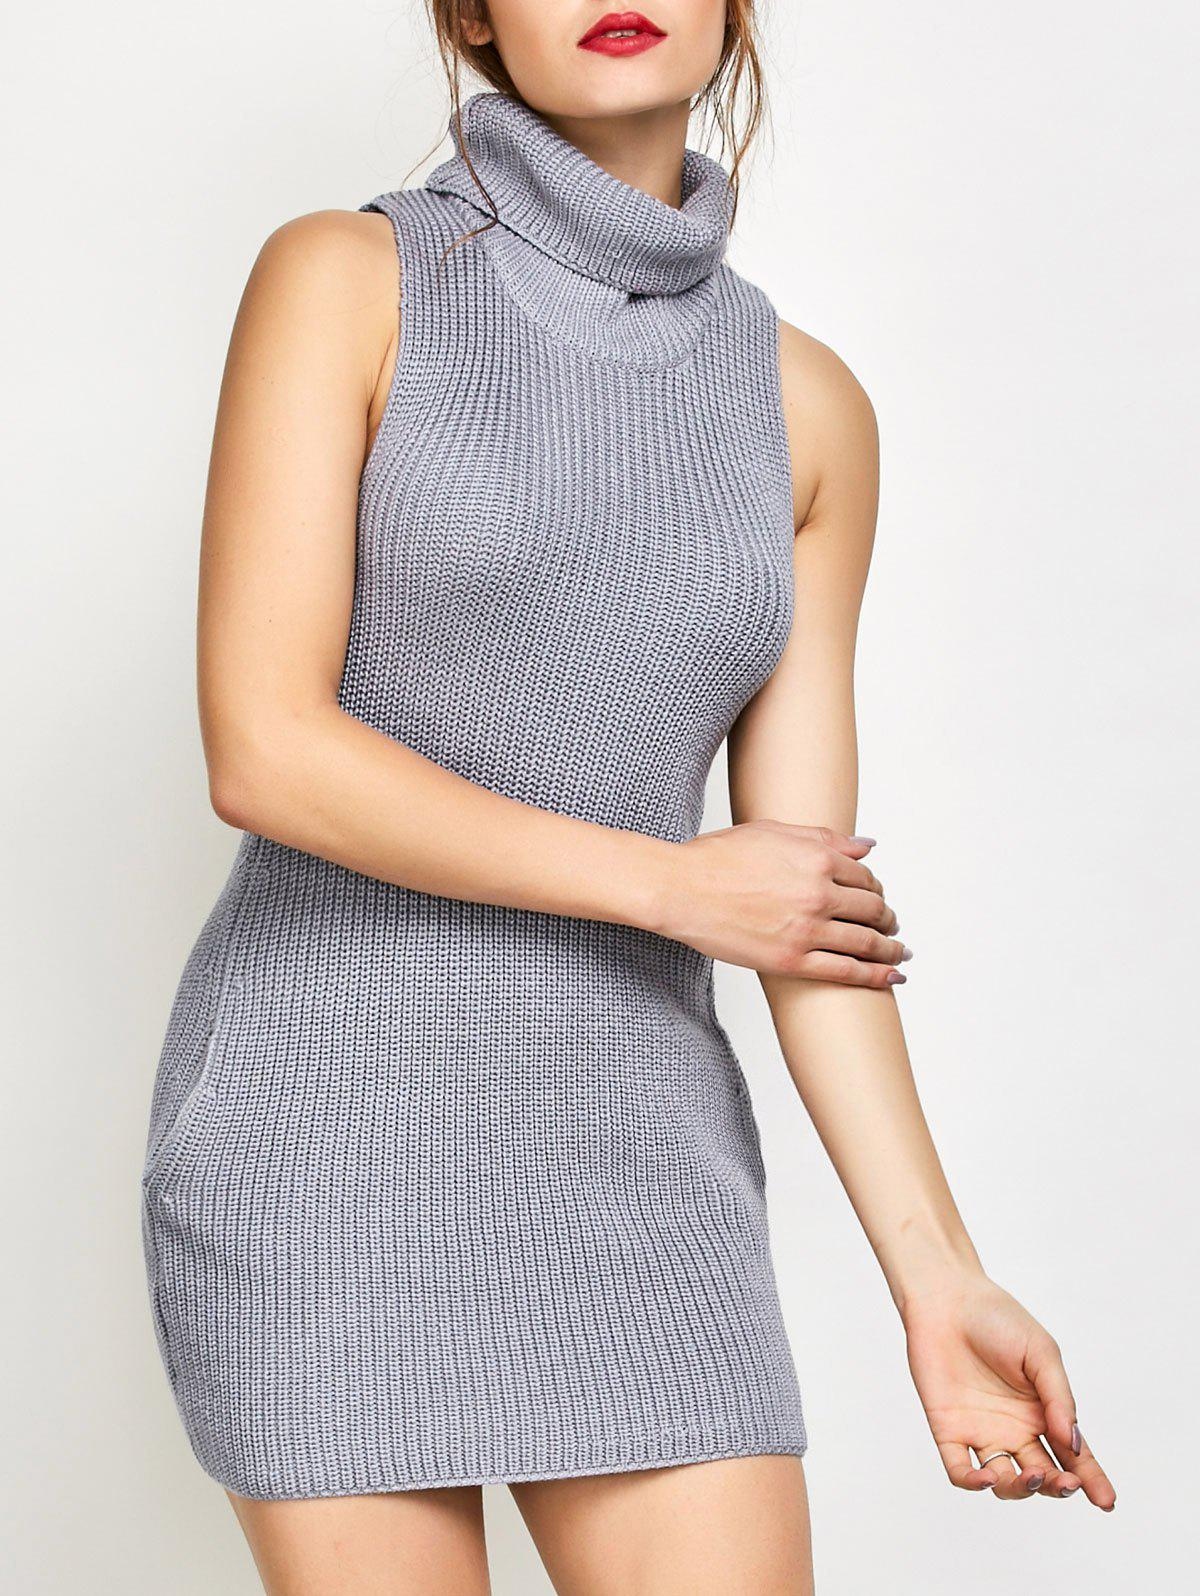 Sleeveless Turtle Neck Jumper Dress - GRAY M